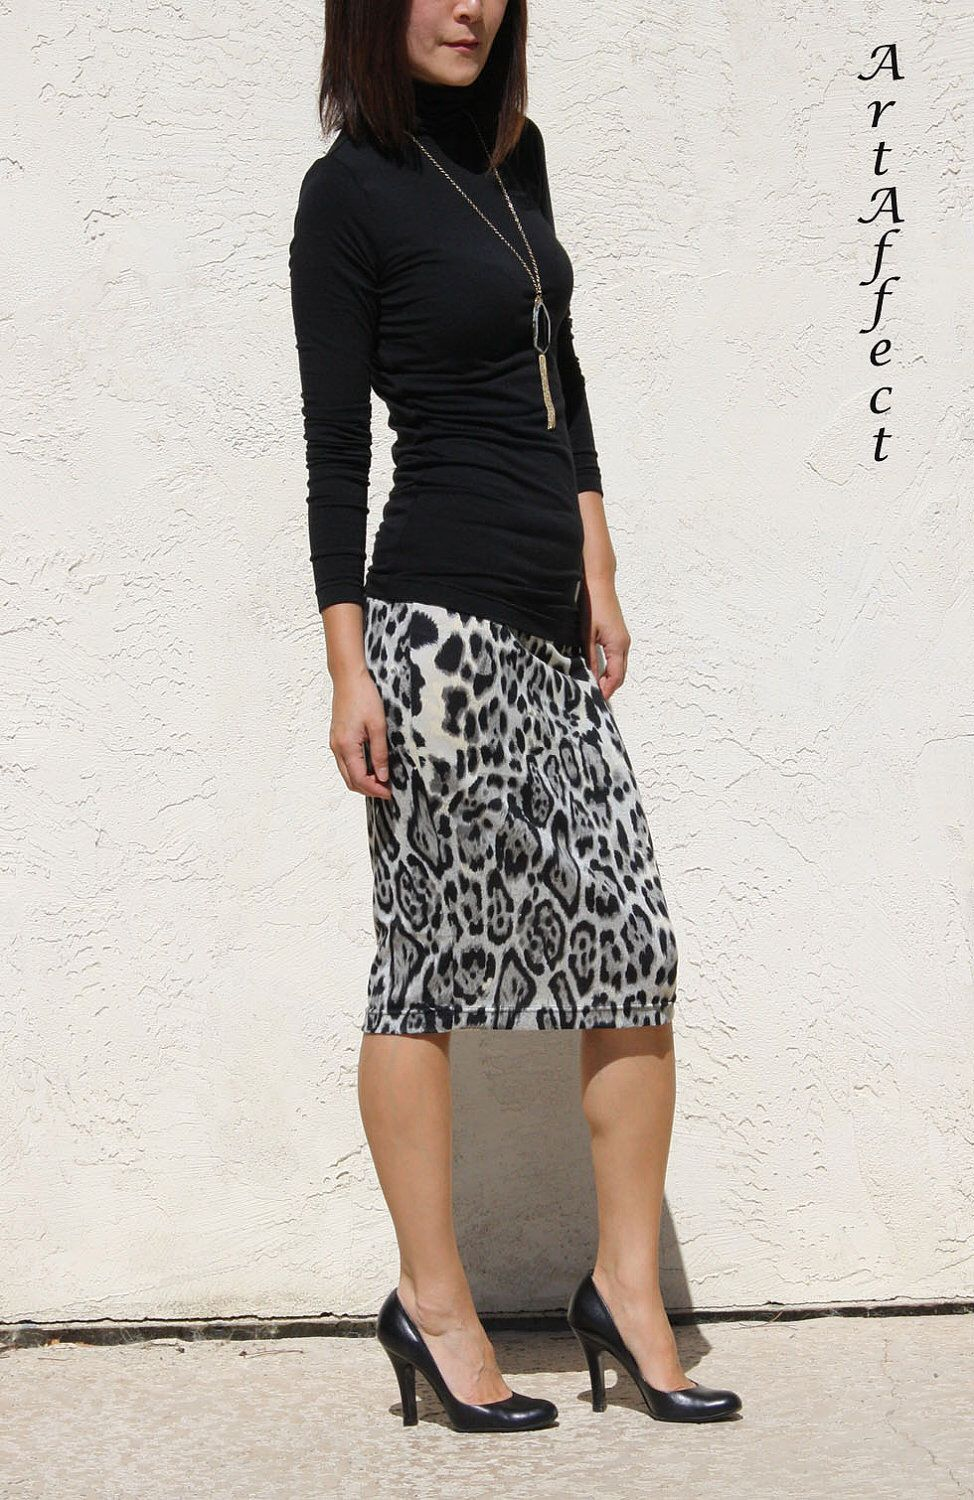 c4d77f68cd Sweater Knit Everyday Pencil Skirt - Black and Gray Leopard Print by  artaffect on Etsy https